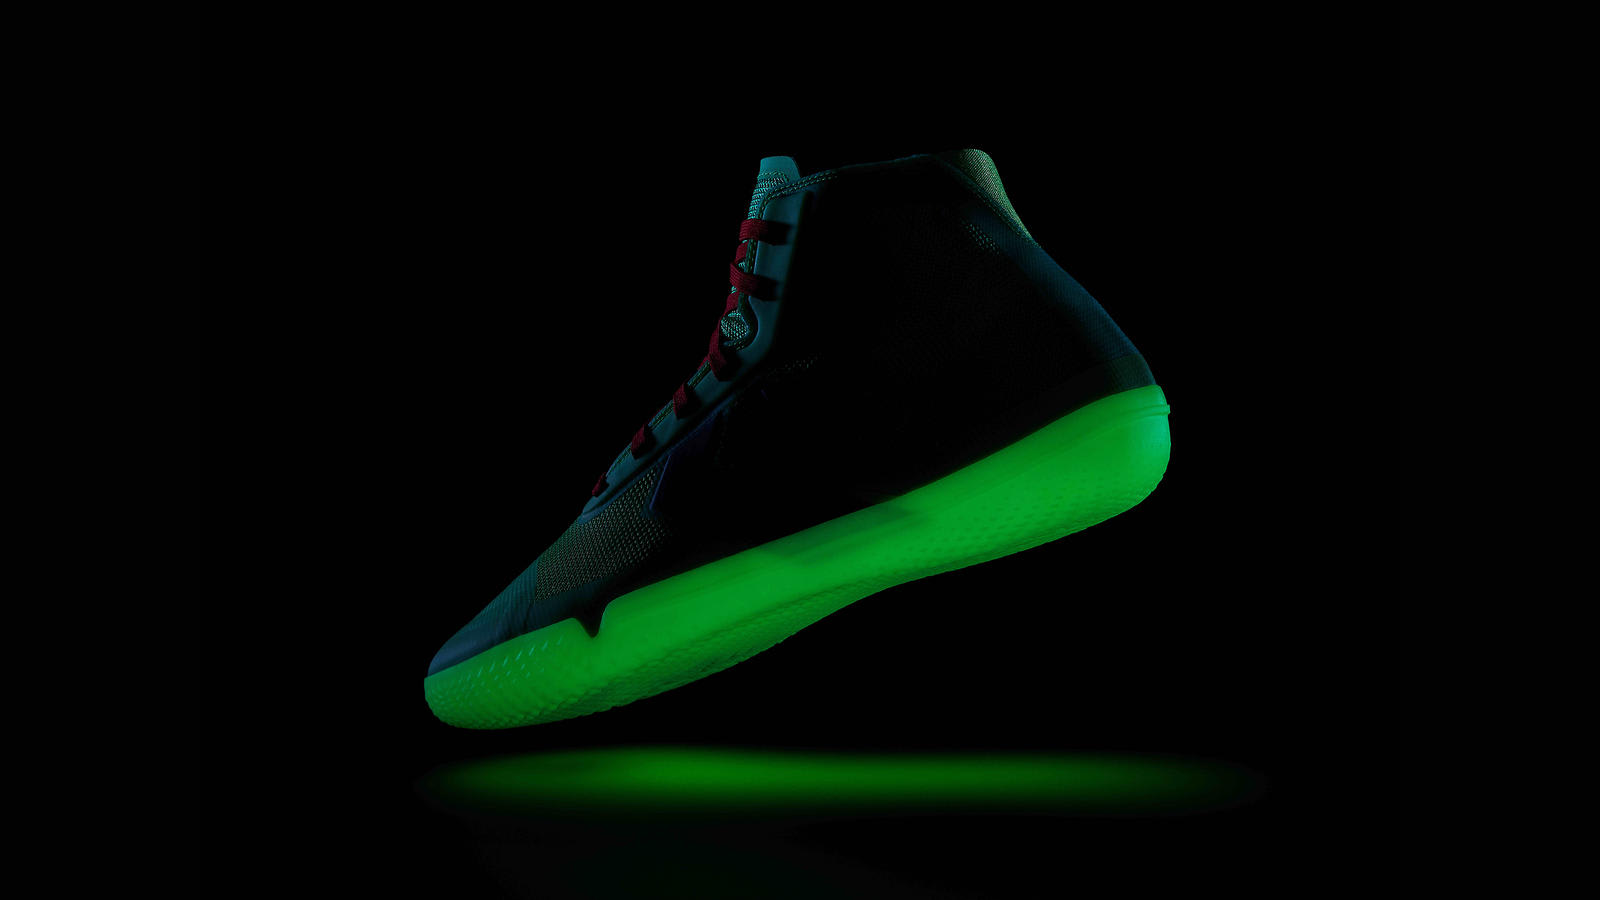 converse-all-star-pro-bb-nocturnal-lateral-glow-in-the-dark